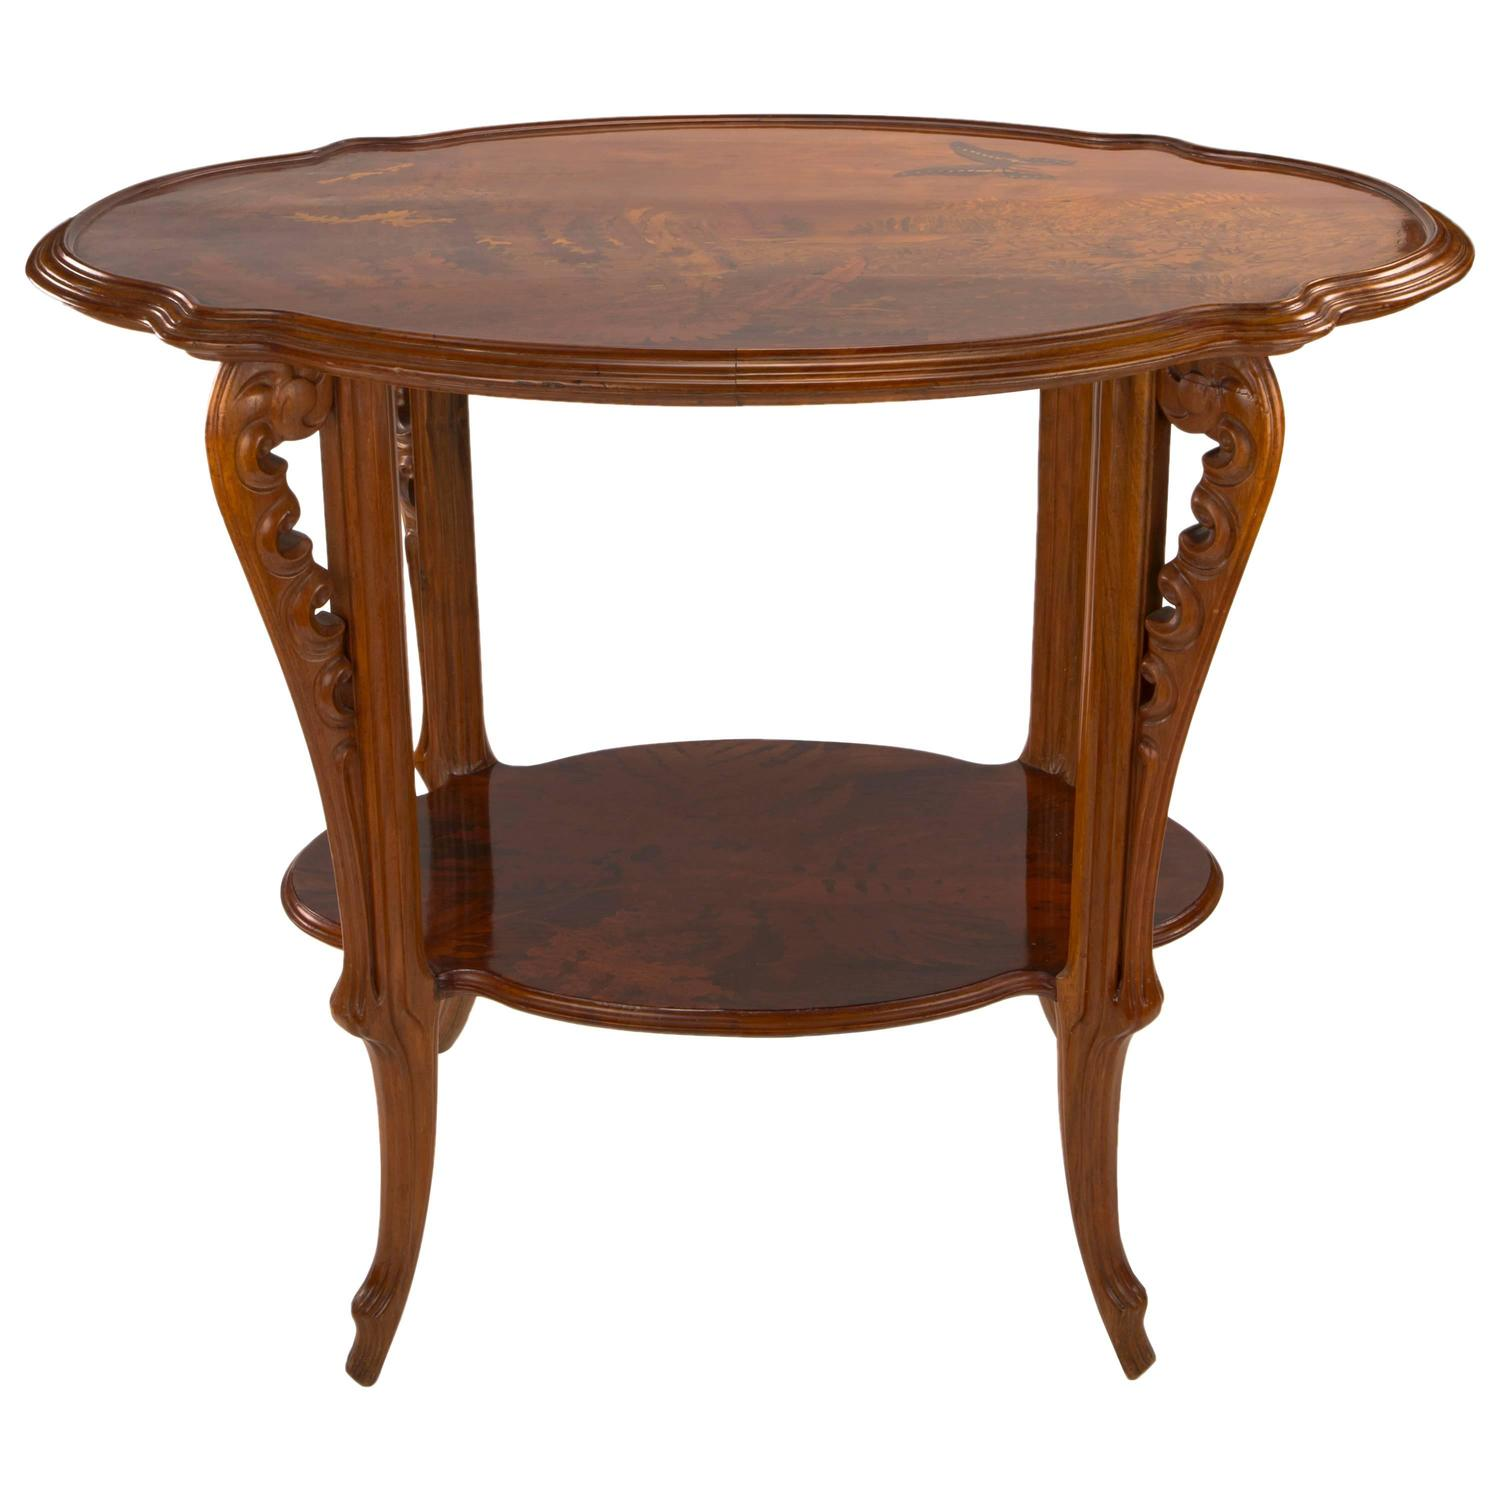 French Art Nouveau Carved and Inlaid Wood Marquetry Table by Emile